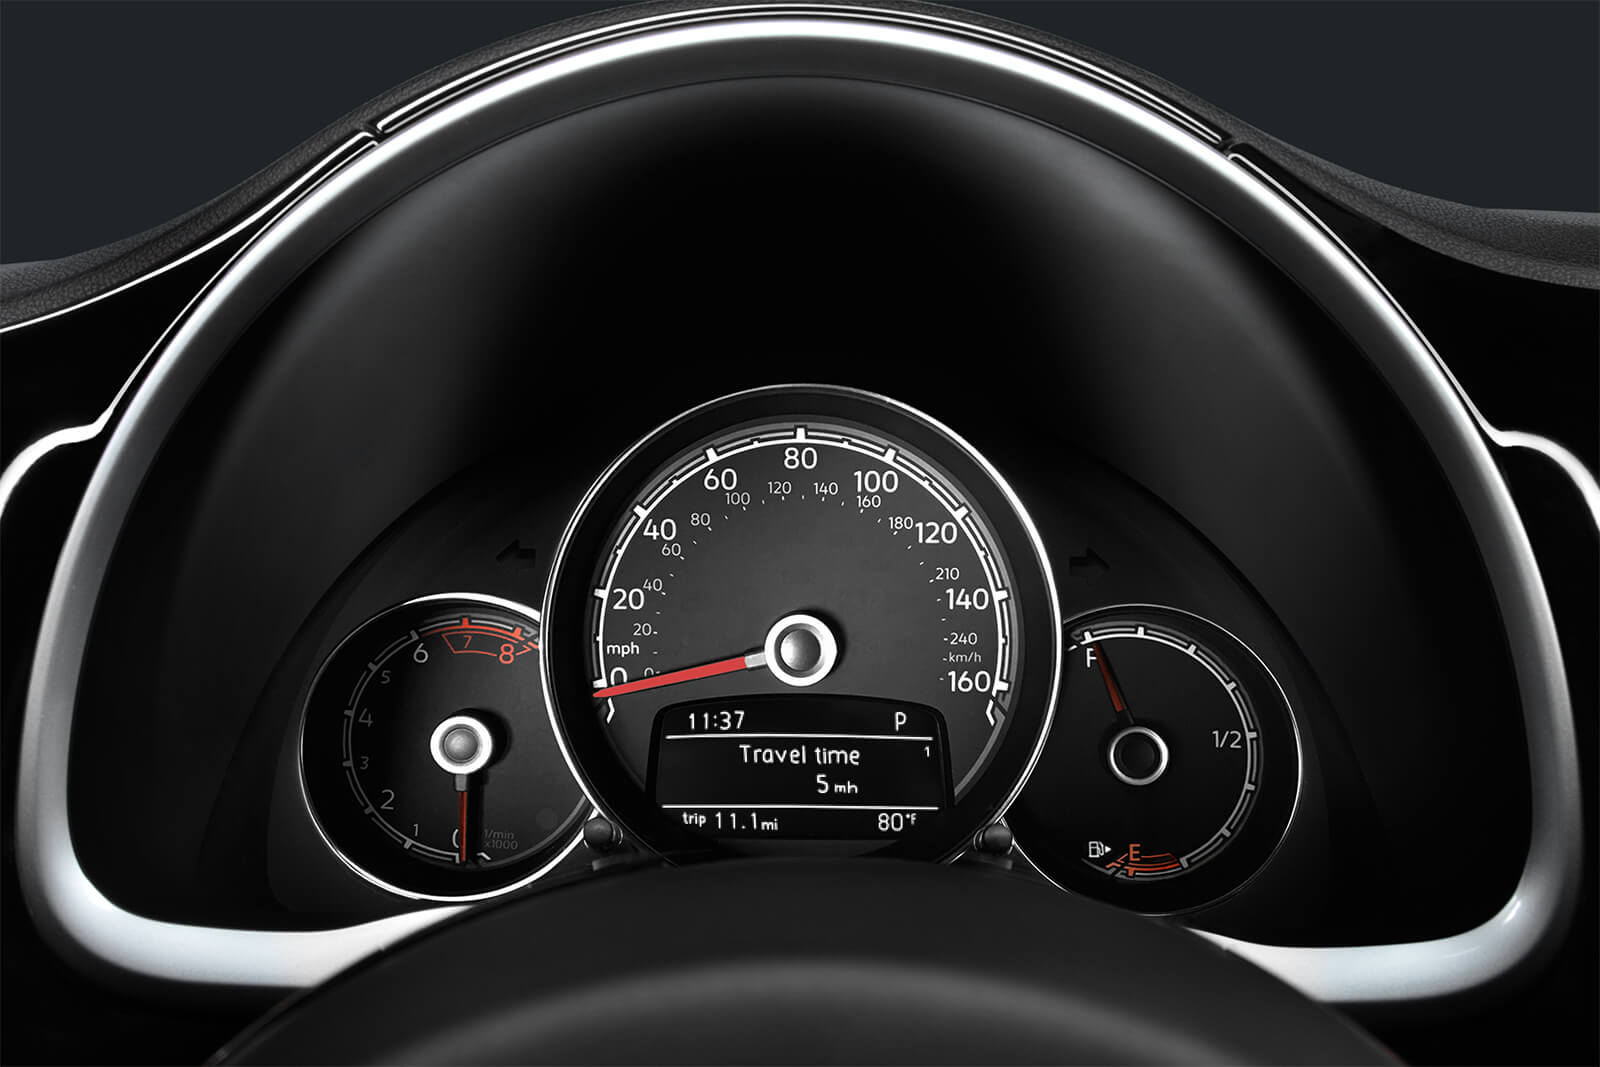 Dashboard in the 2019 Beetle